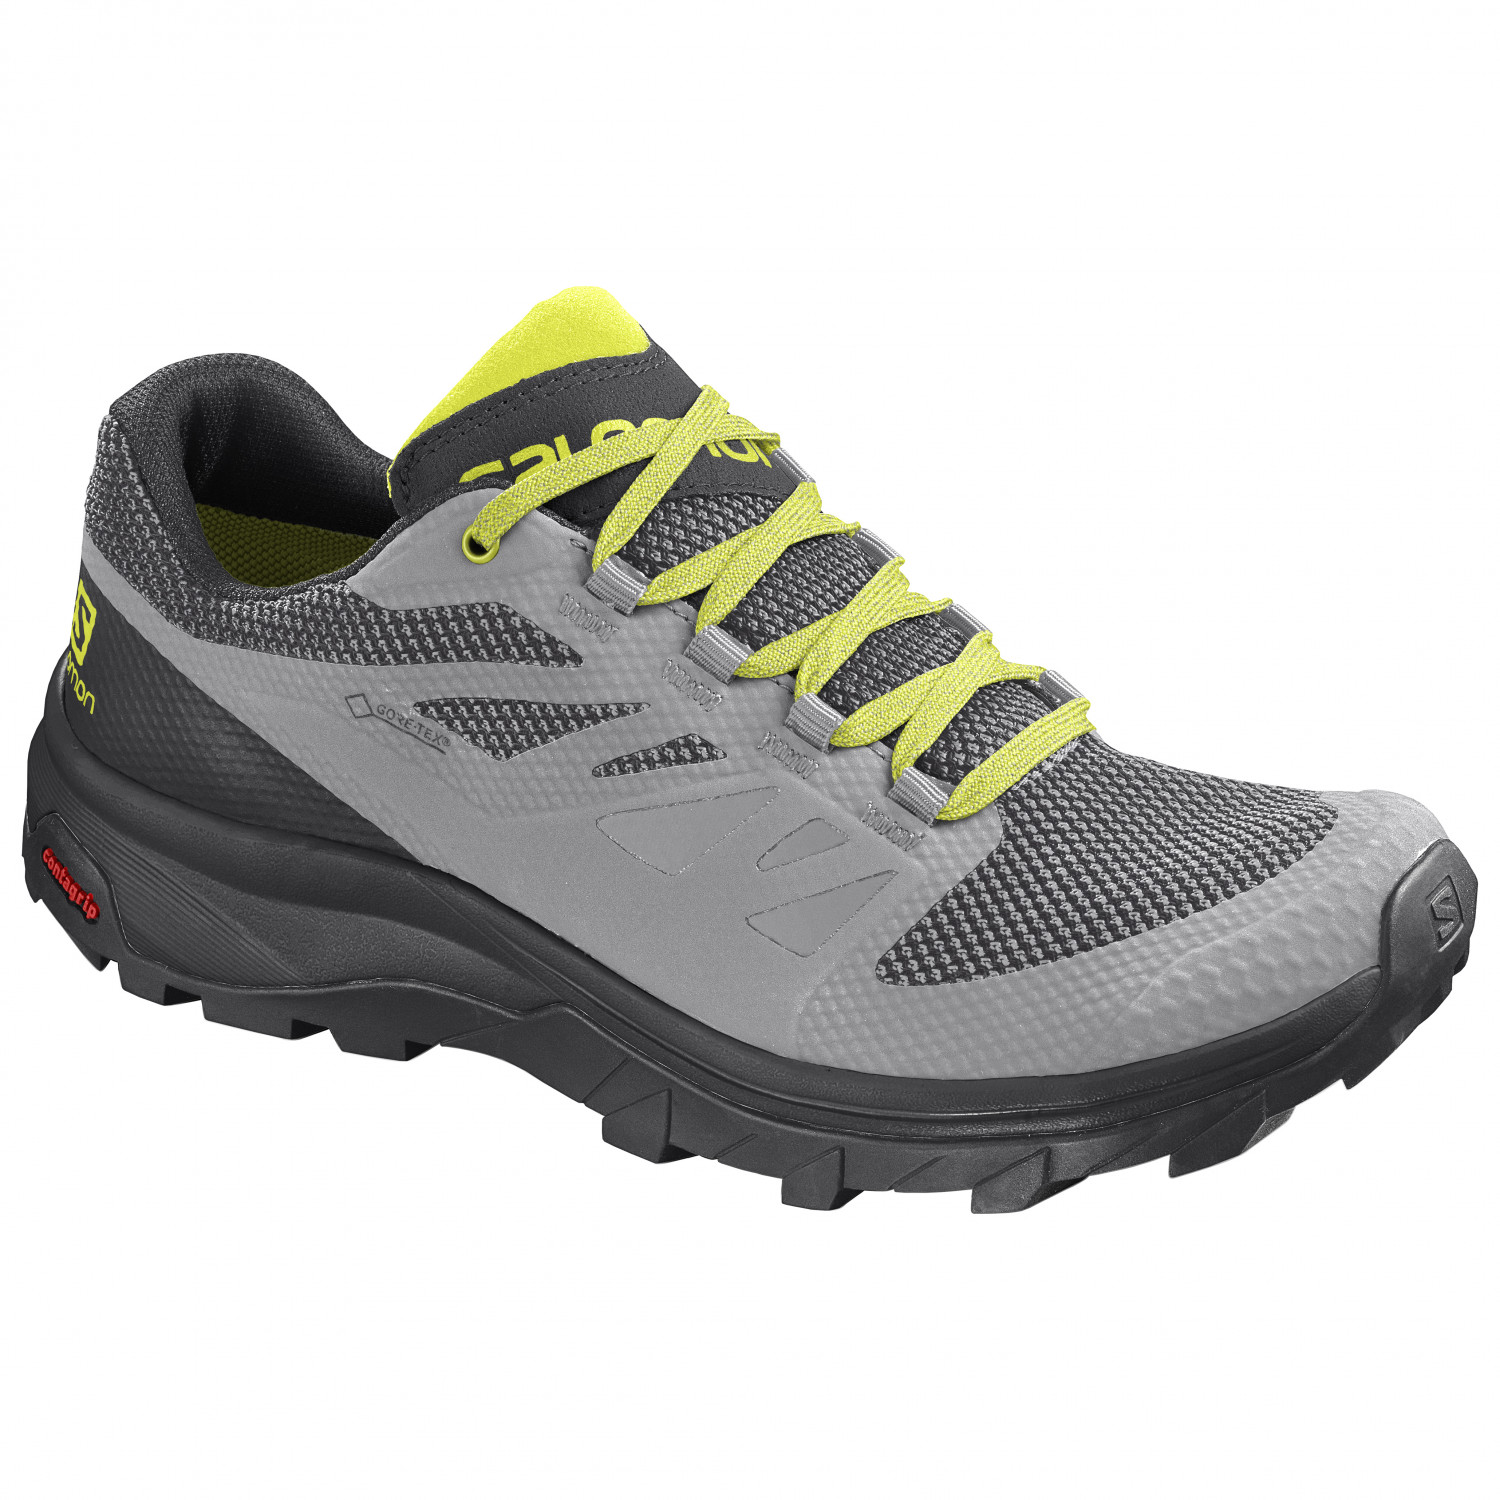 Salomon Outline GTX Multisportschuhe Black Phantom Magnet | 7,5 (UK)